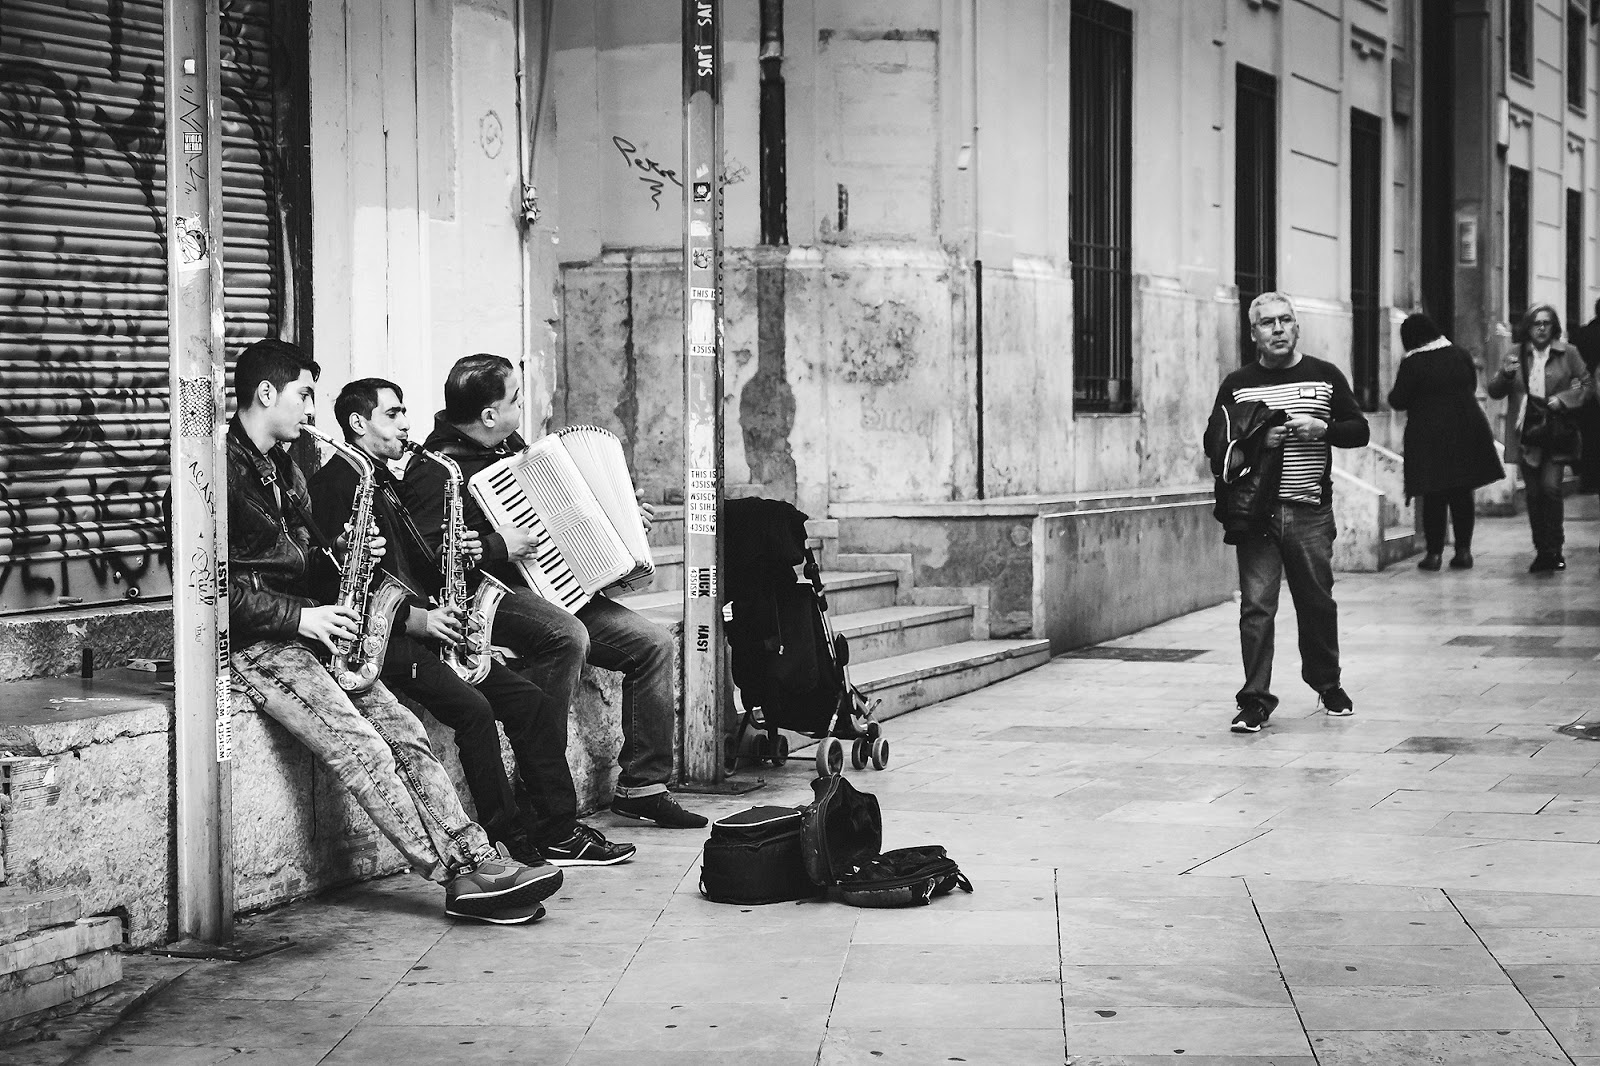 black and white street photography of musicians in Valencia Spain by Willie Kers